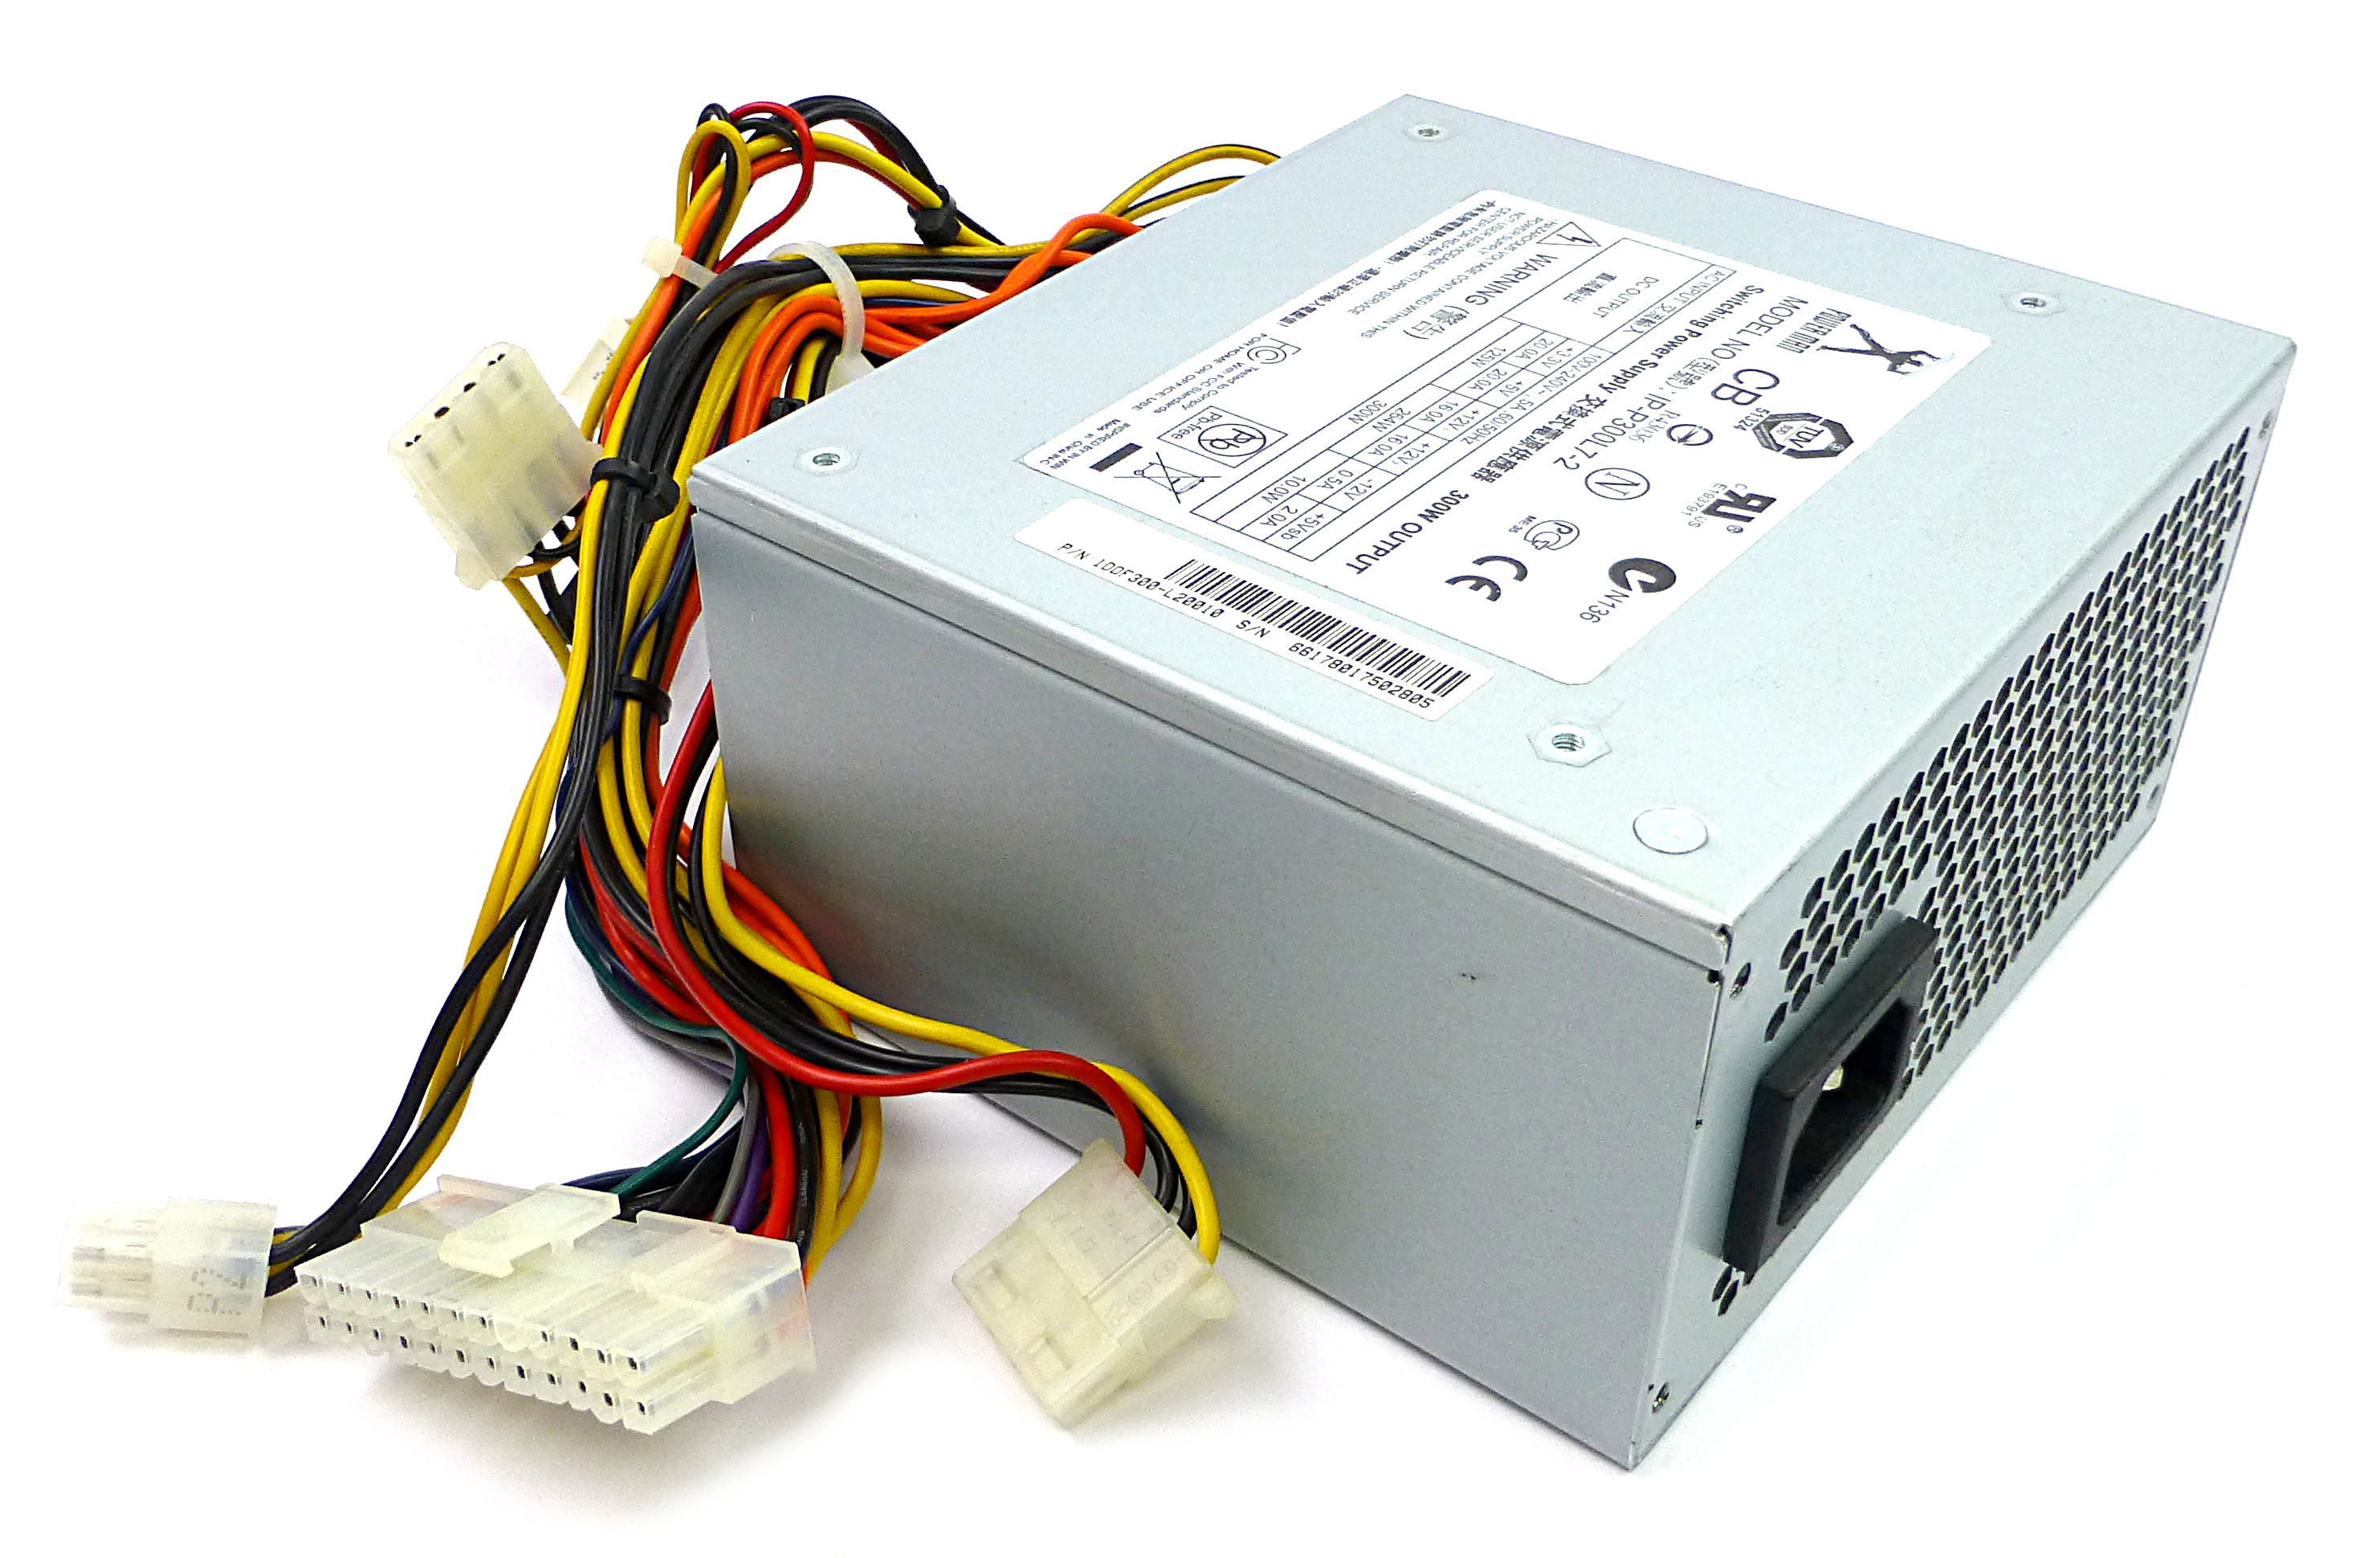 IP-P300L7-2 Power Man 10DF300-L20010 300W 20/24 Pin Power Supply